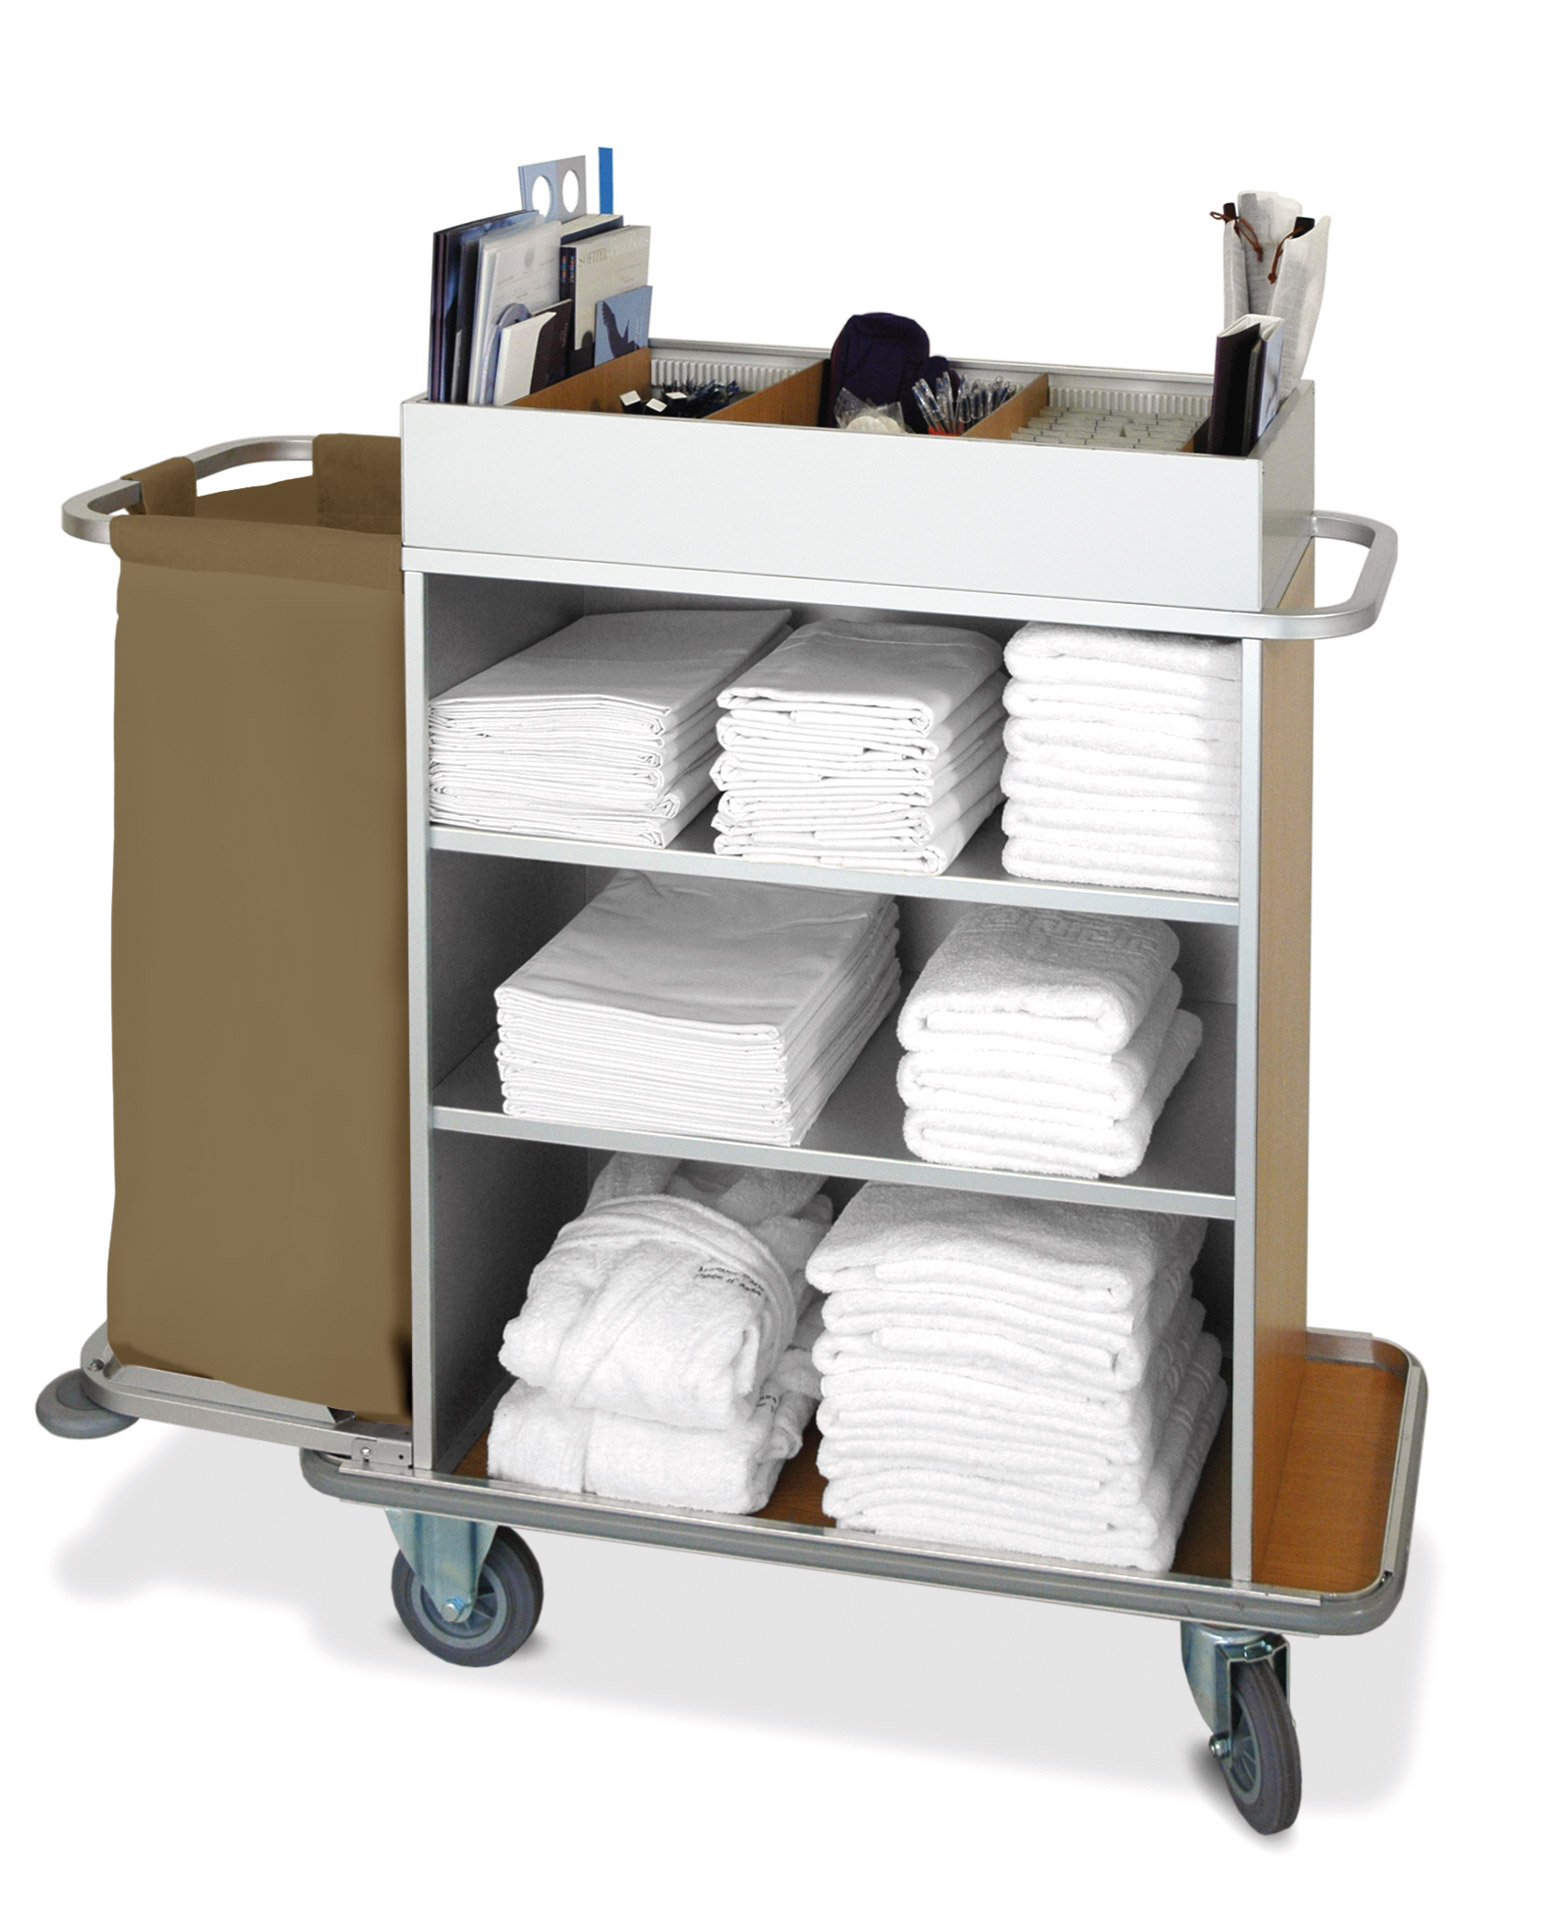 Housekeeping Trolleys For Hotels And Cruise Ships Mercura